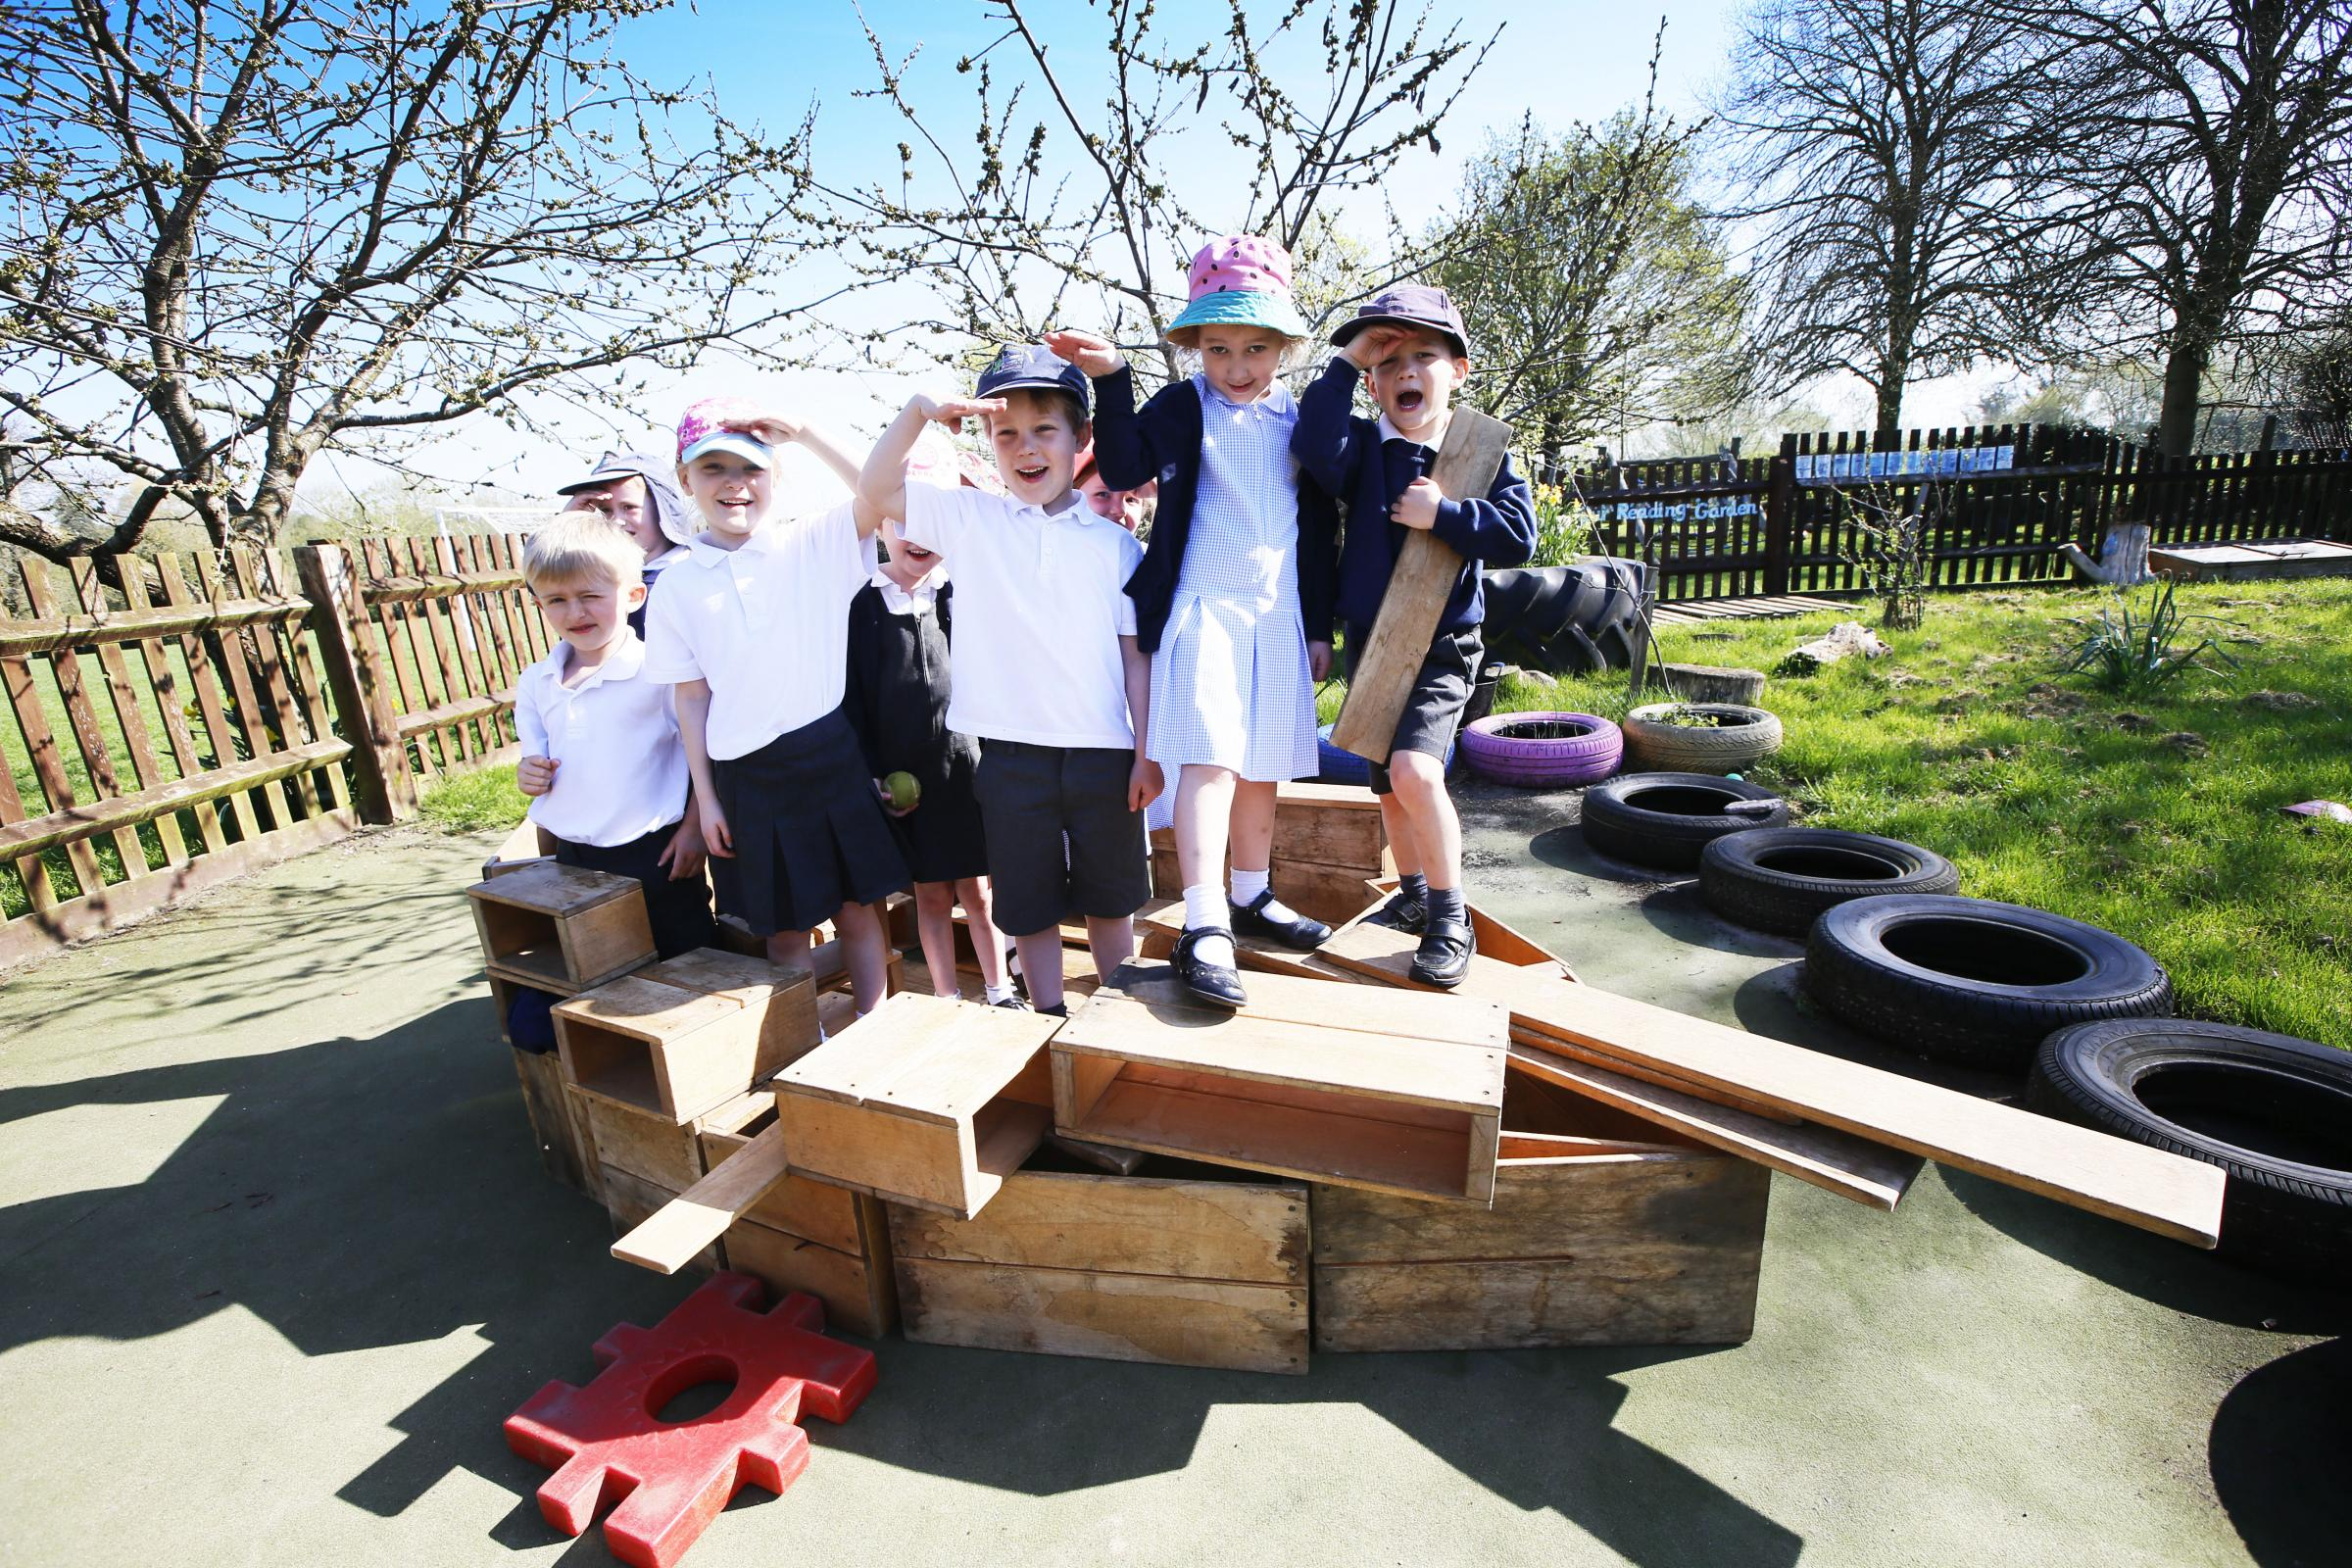 AHOY: Pupils from Maple class on their 'pirate ship' 								         All pictures taken by Ed Nix